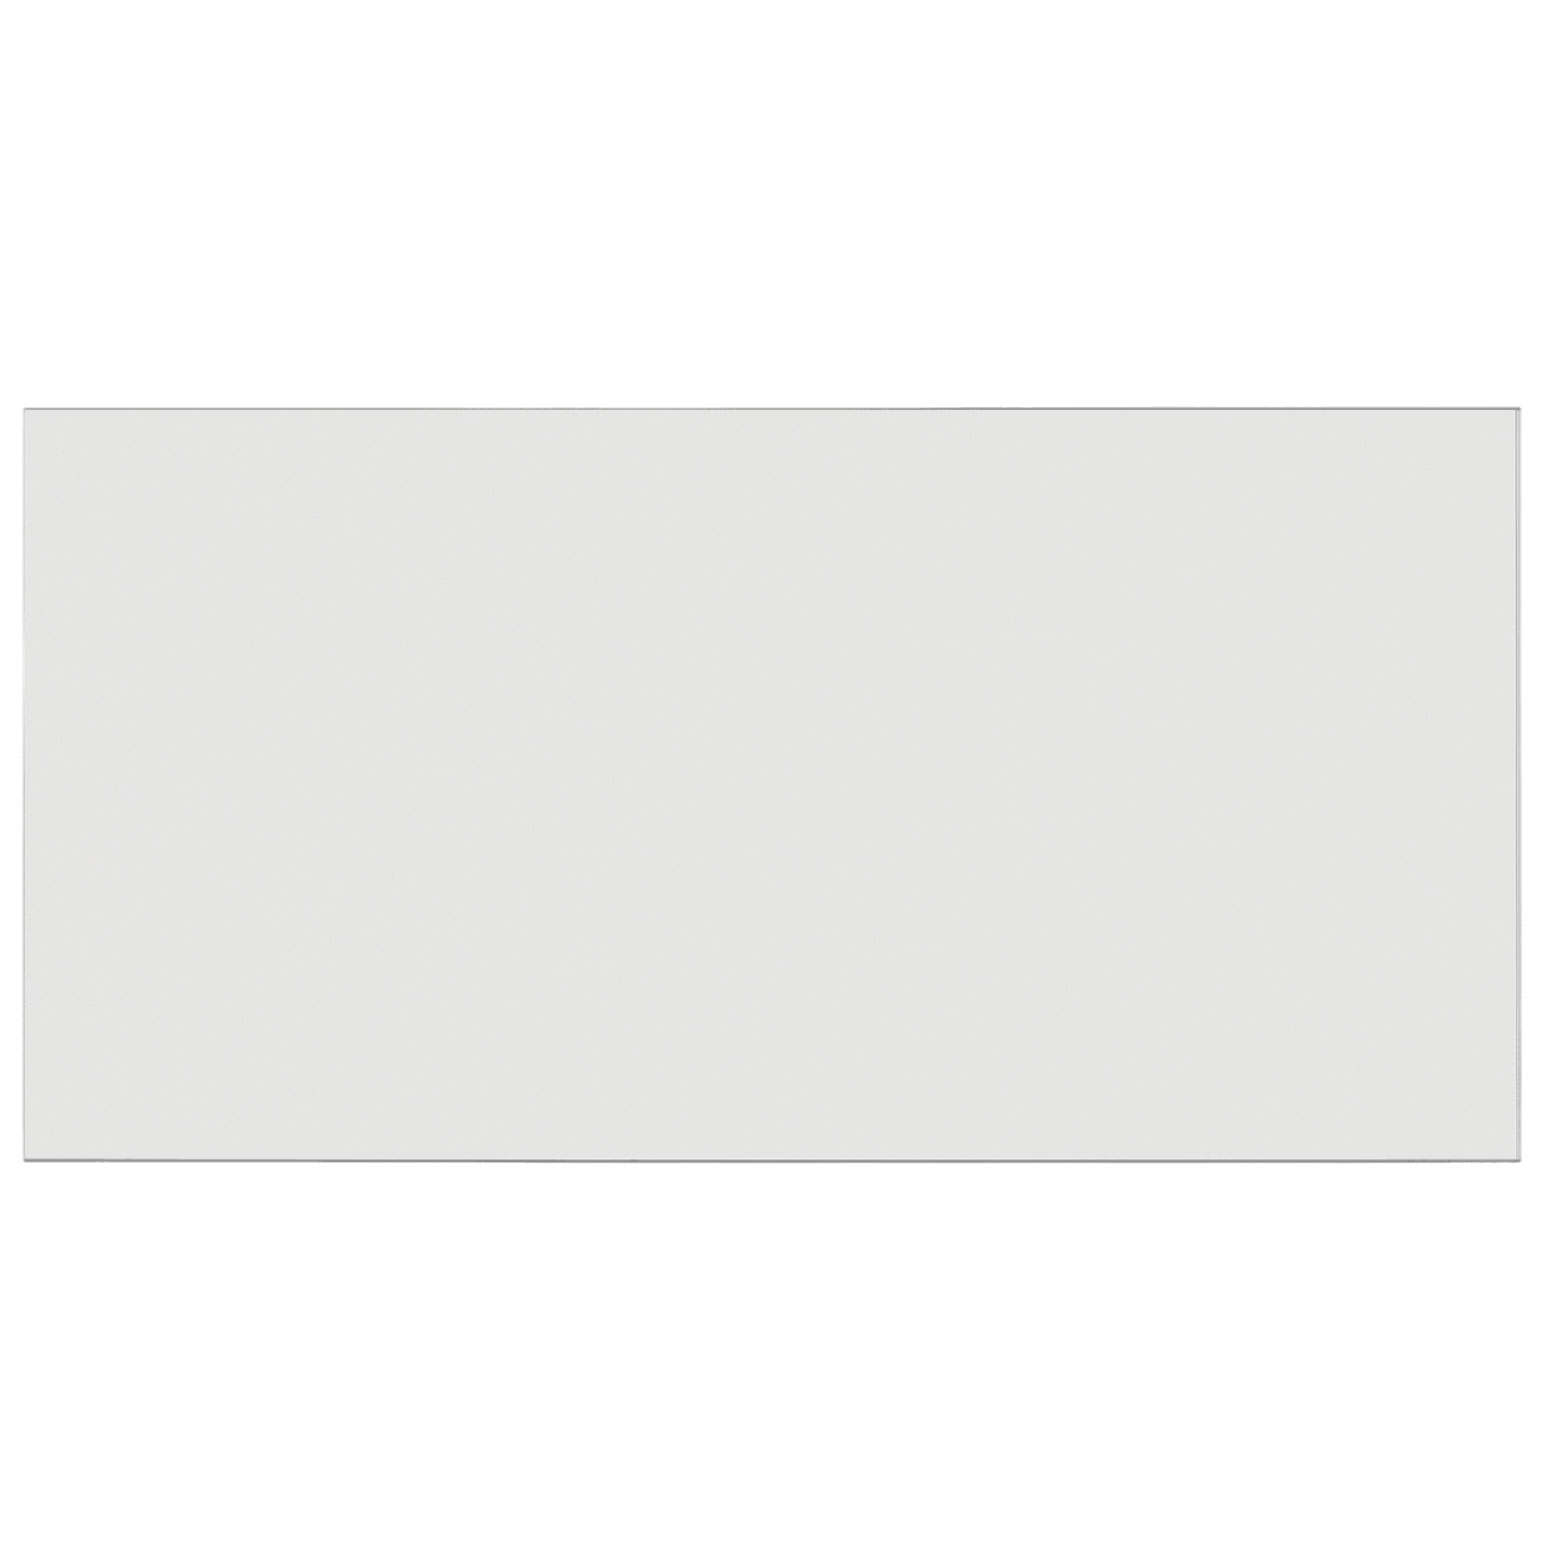 Frosted Acrylic Screen with Square Edges – 72″W x 24″H